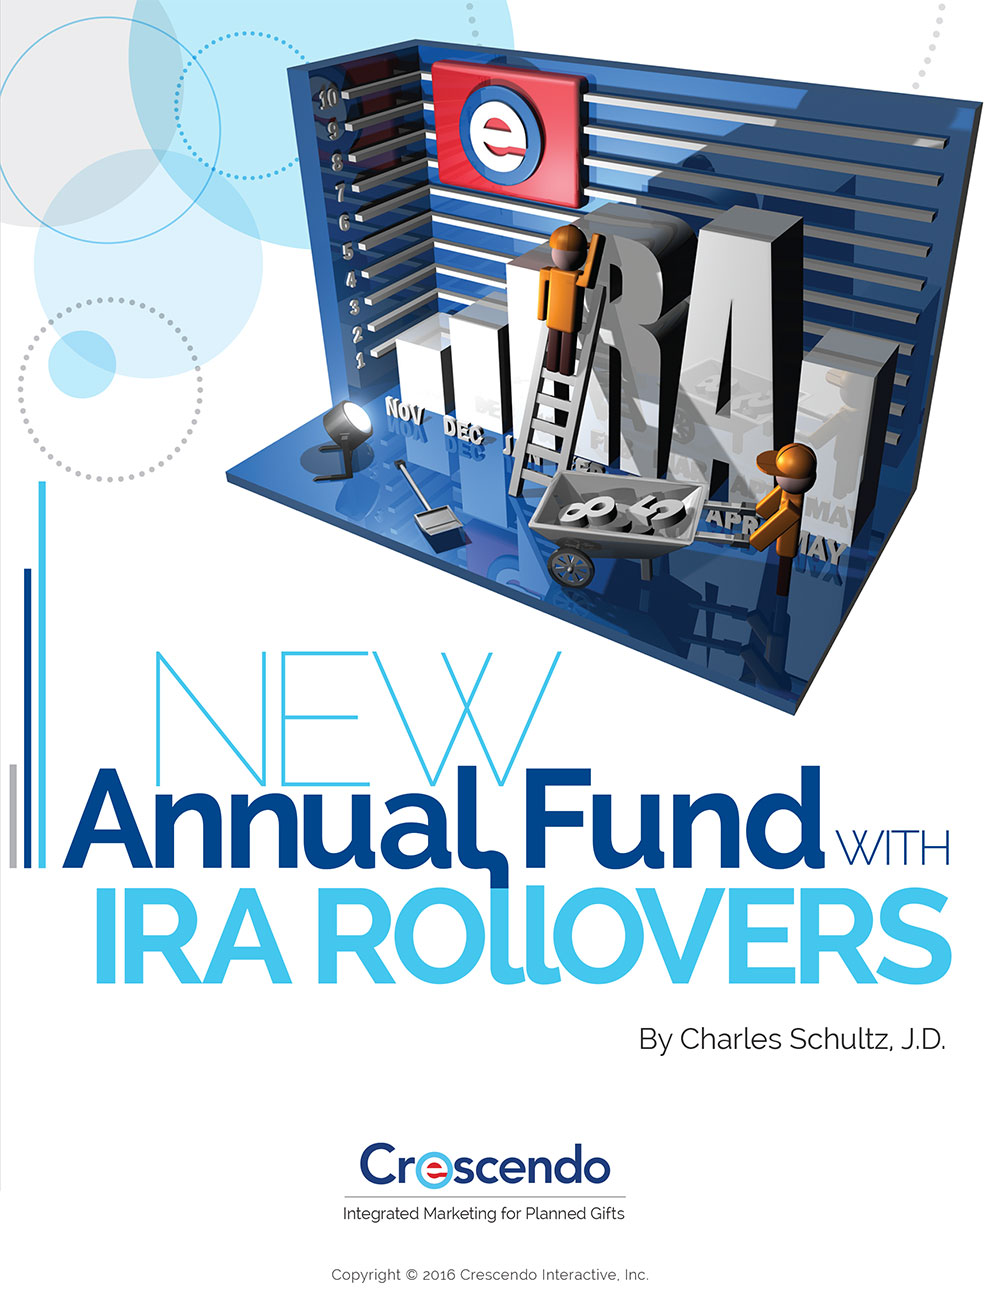 New Annual Fund with IRA Rollovers